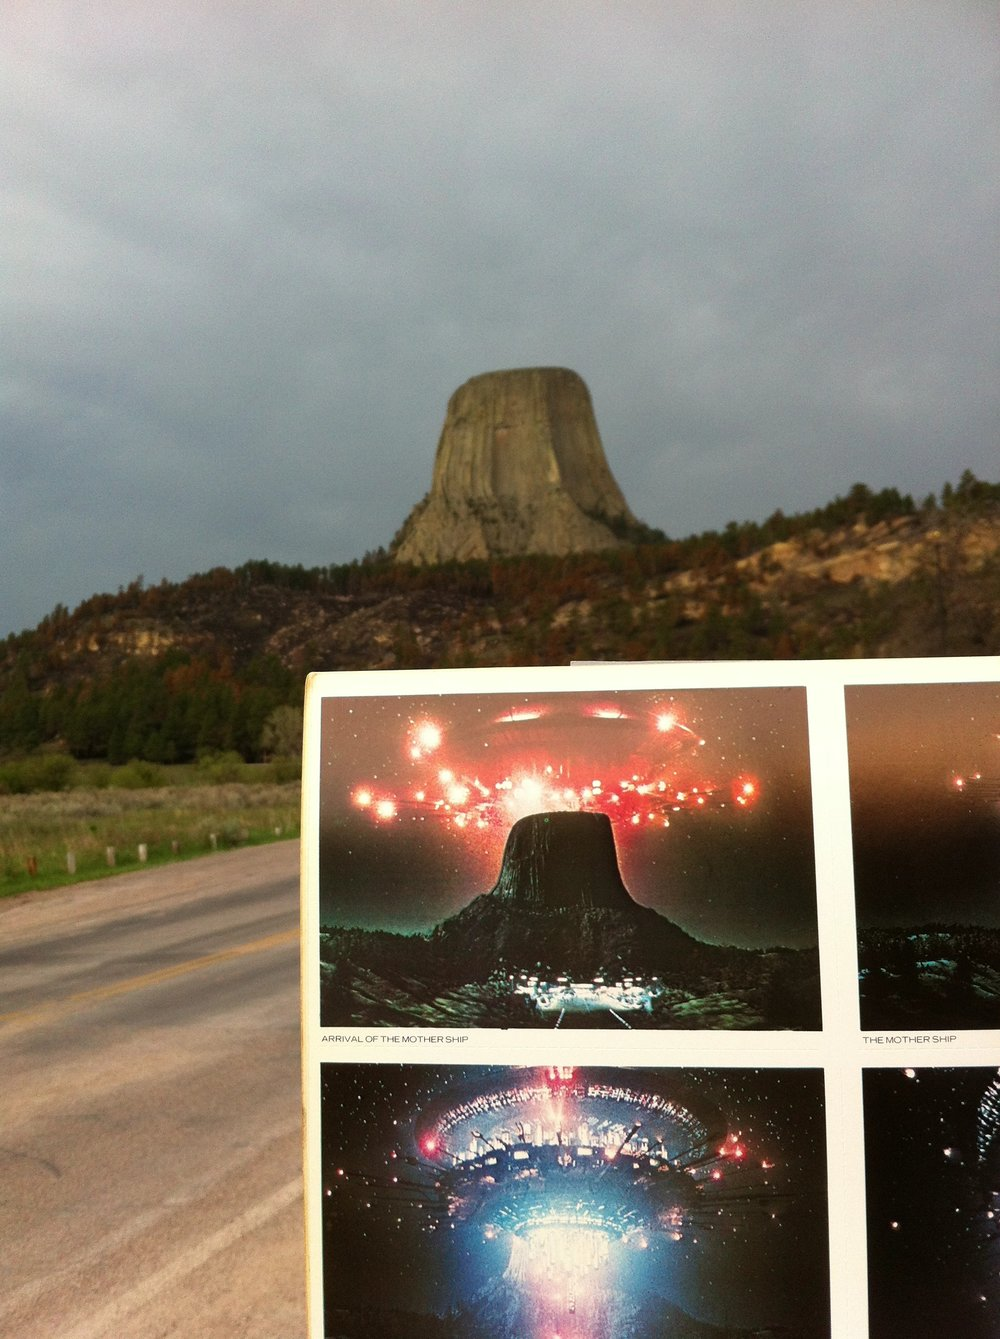 Devils_Tower_2013.JPG